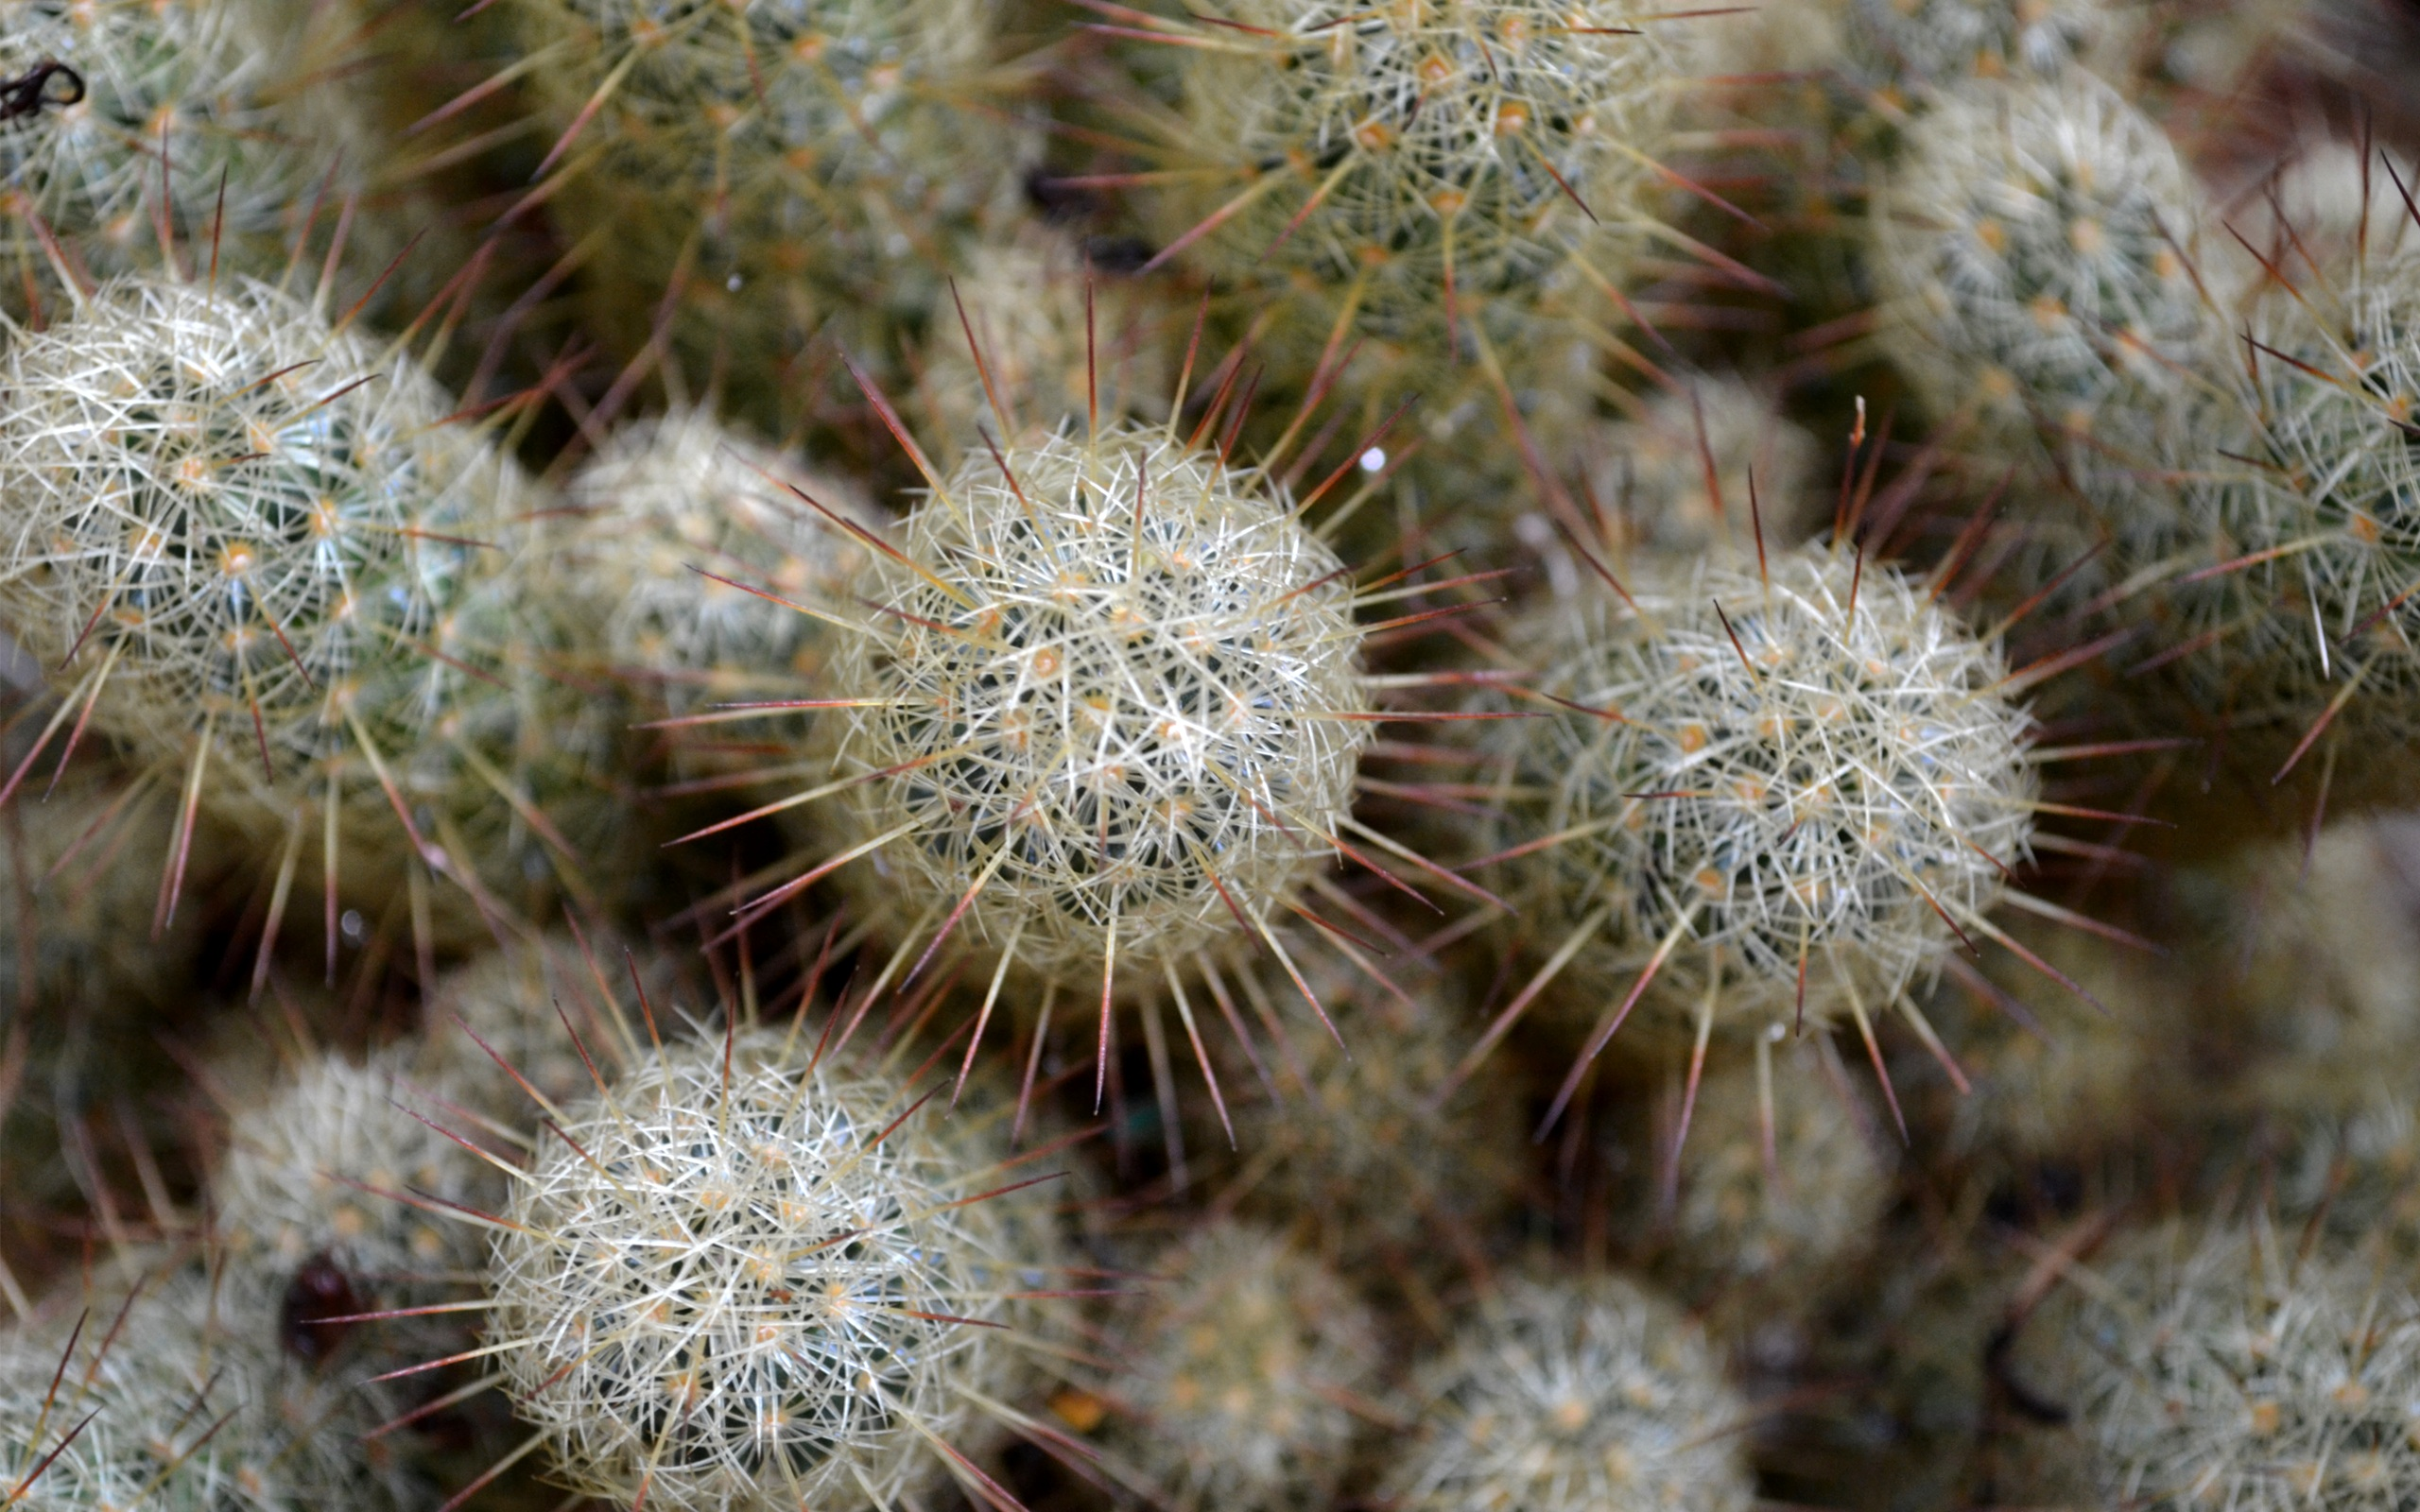 hd cactus wallpapers - photo #8